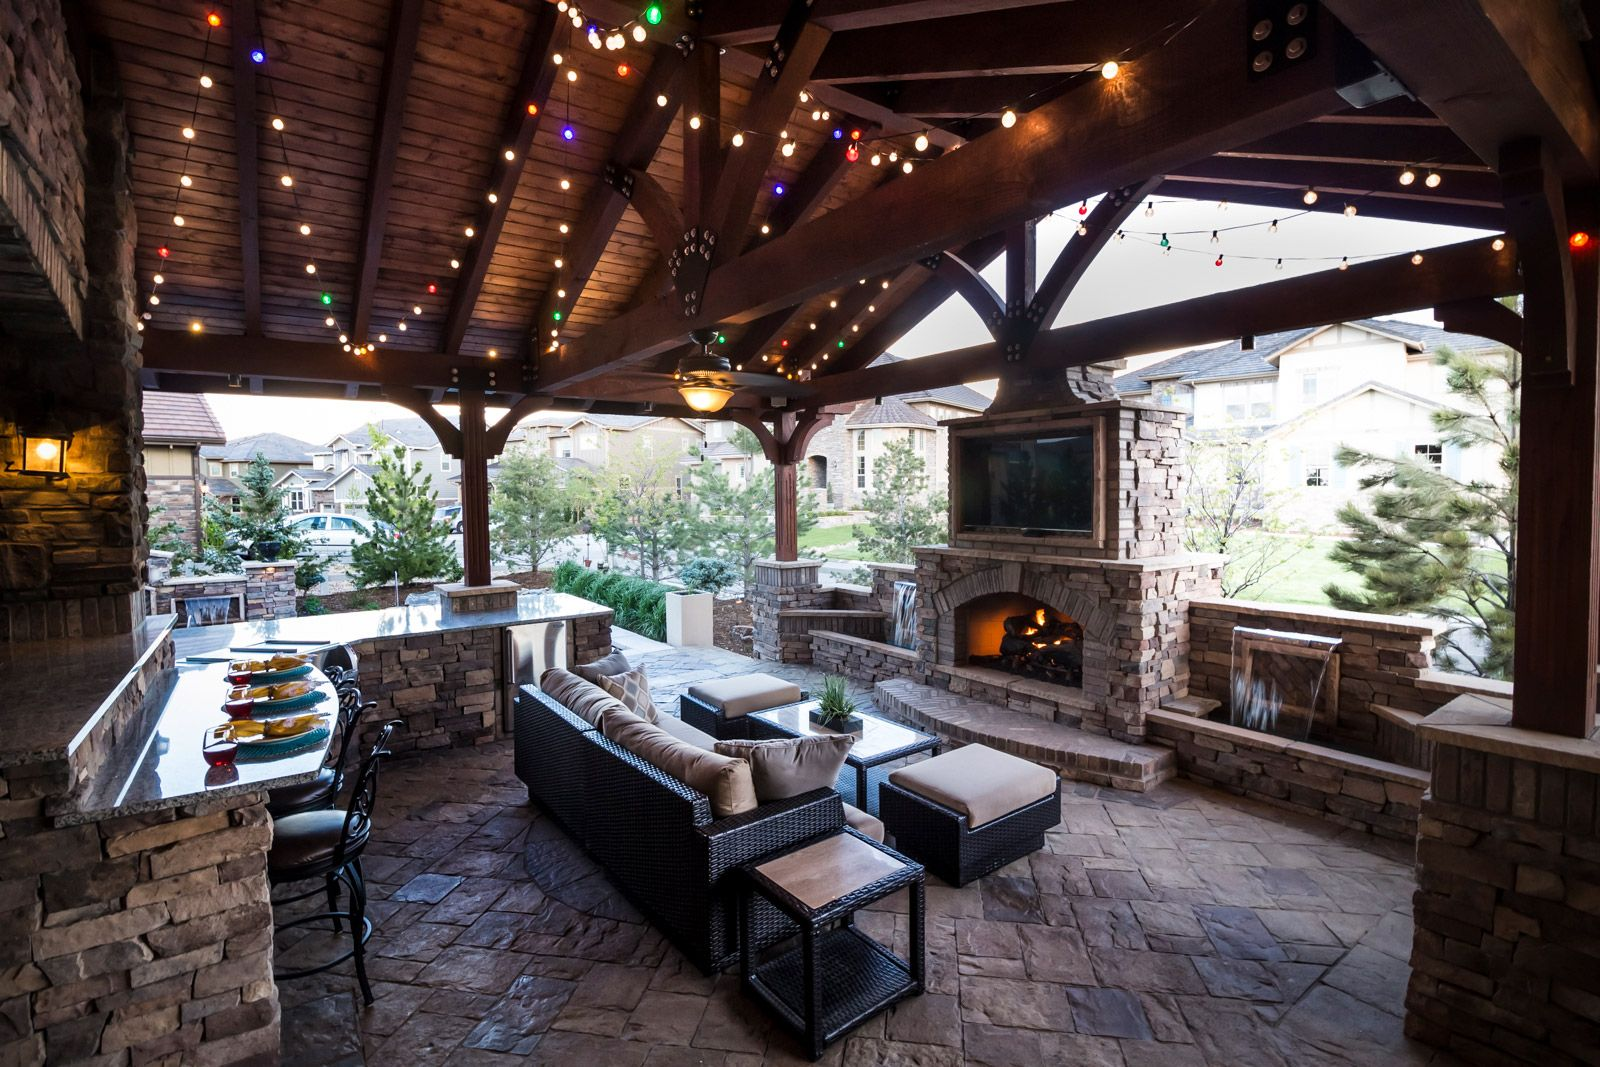 Outdoor Living Spaces & Structures - Elite Landscape ... on Outdoor Living And Landscapes id=21409